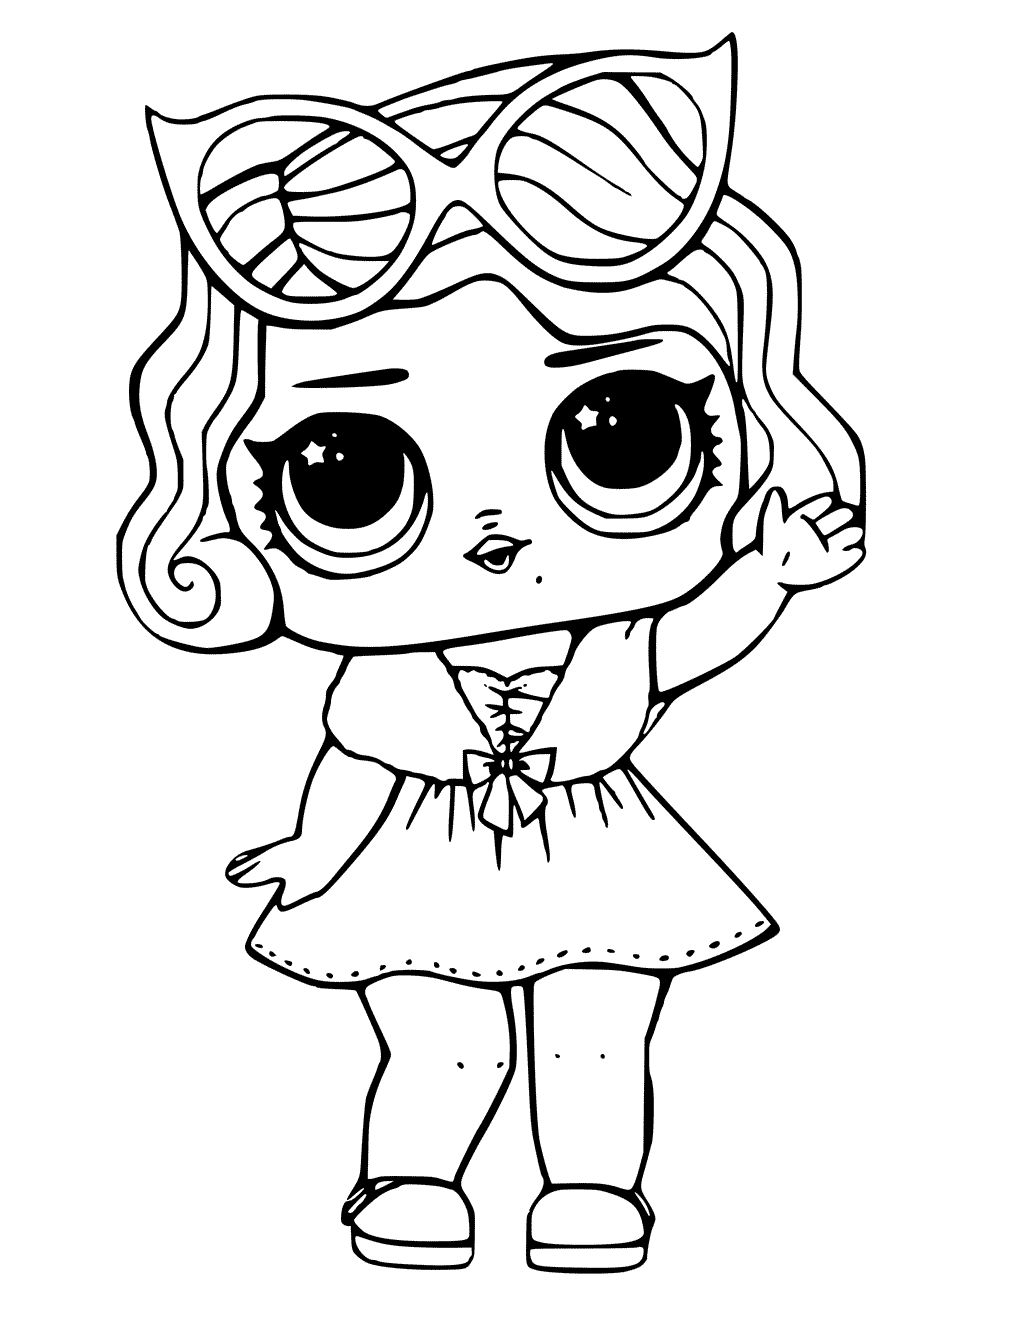 Lol surprise doll coloring pages leading baby lol dolls coloring throughout lol doll colouring pages bonbon regarding lol doll colouring pages bonbon